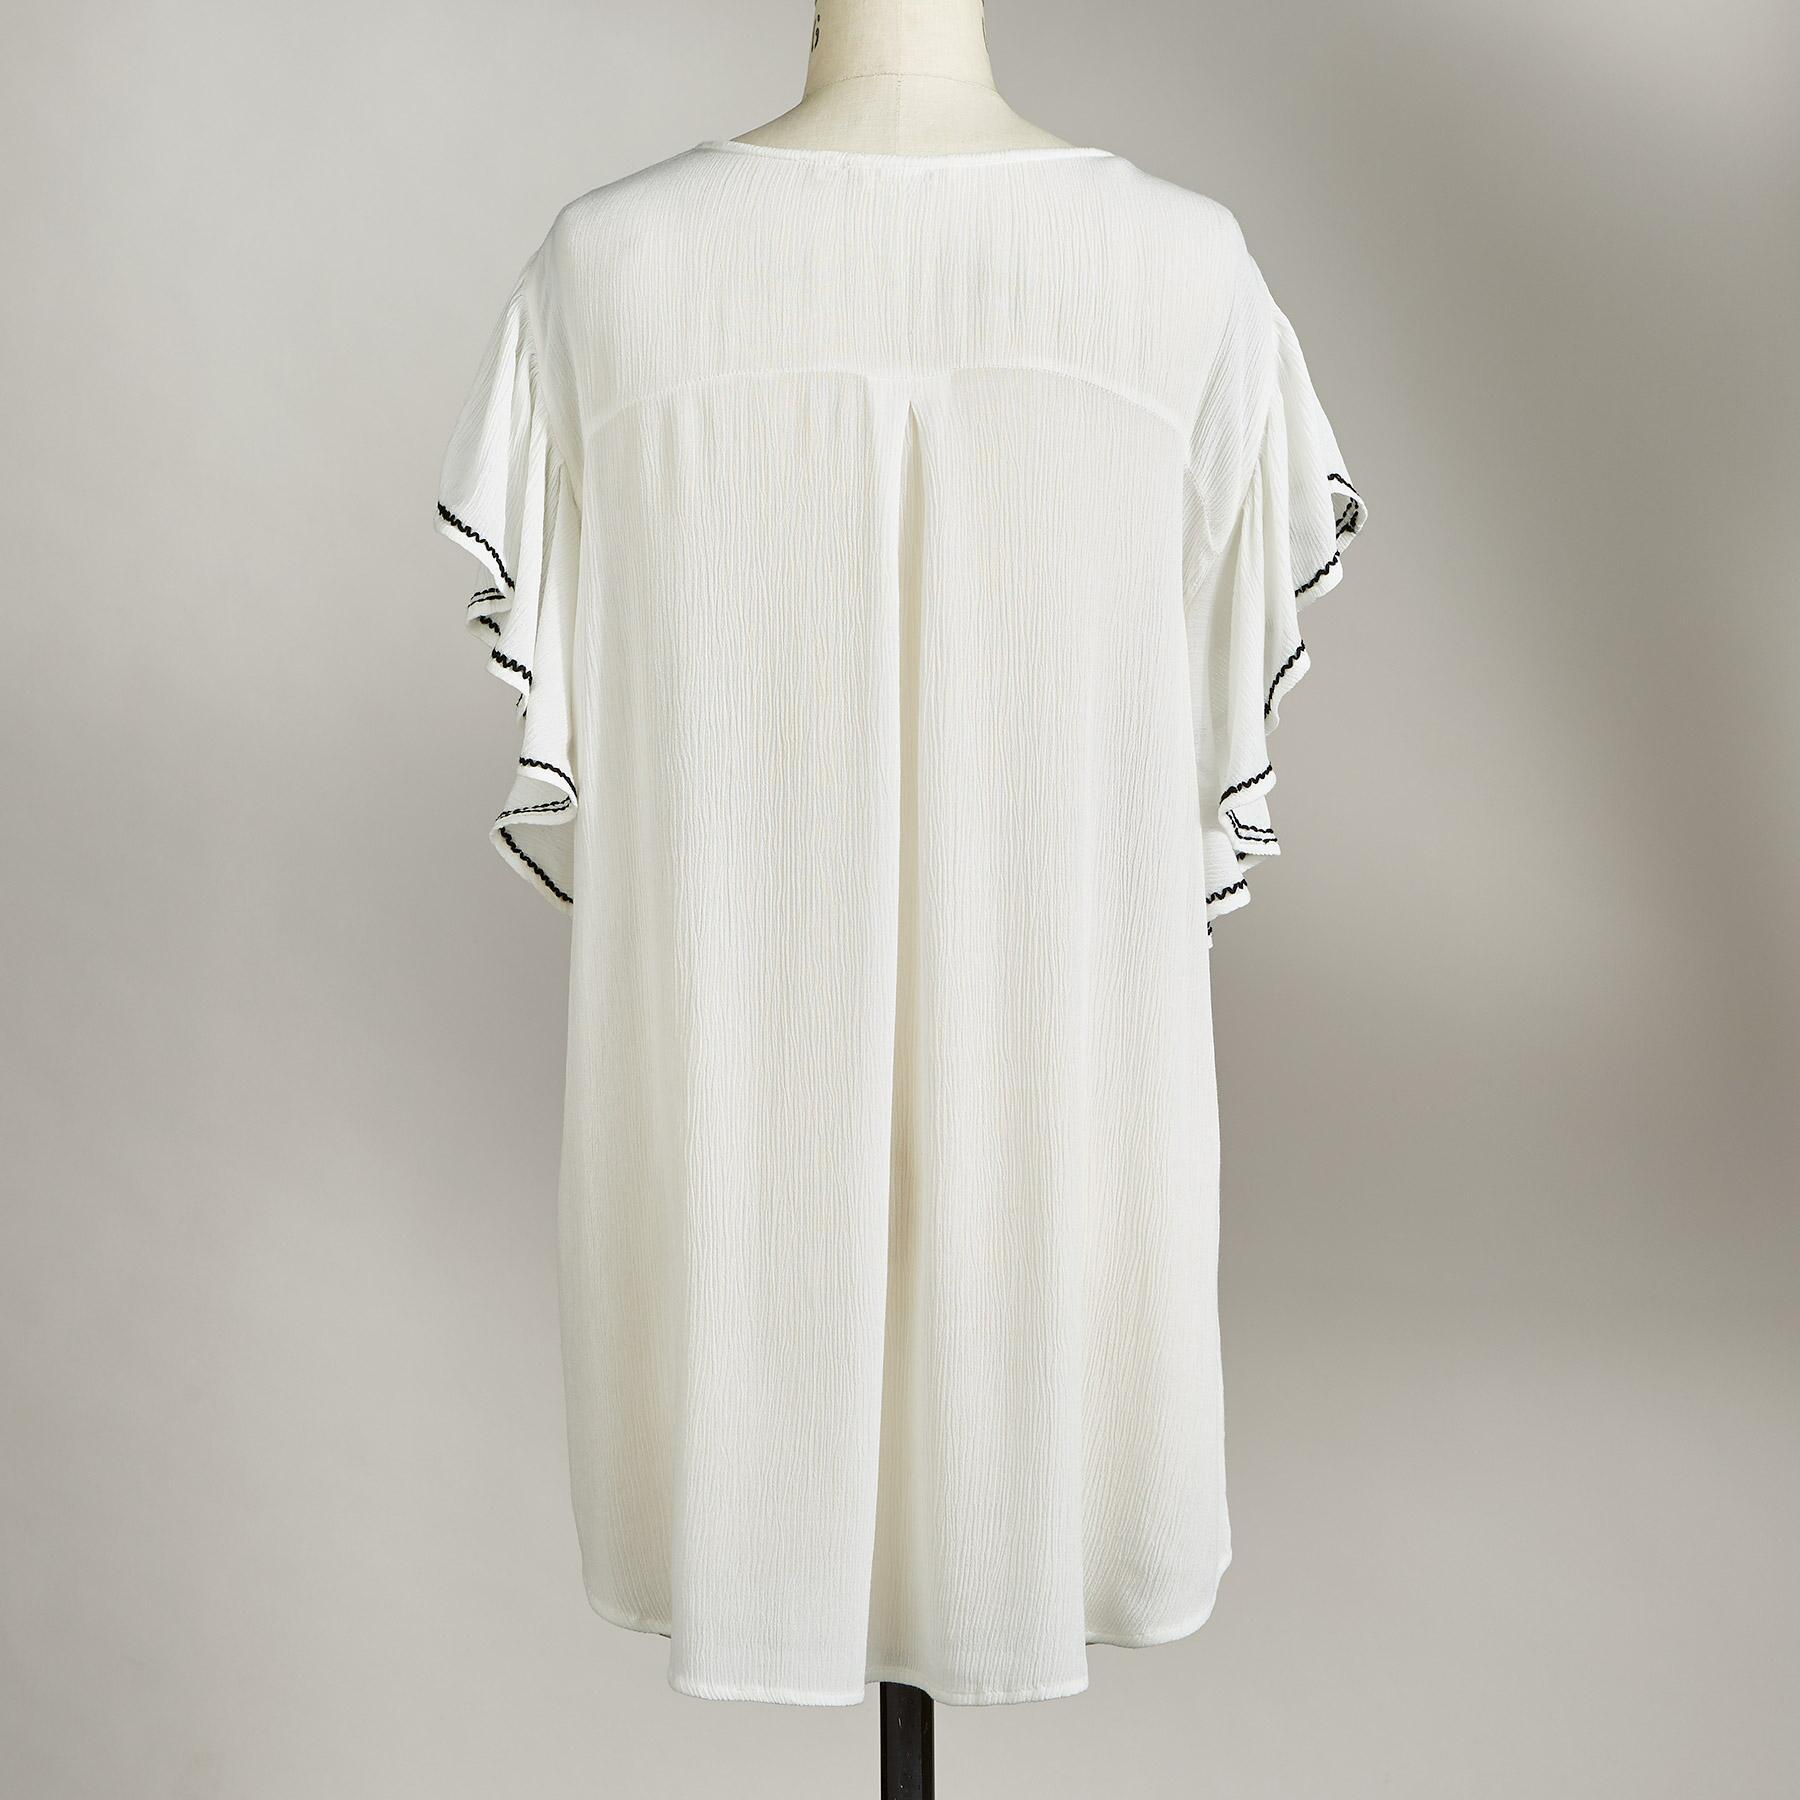 LINES OF A SONNET TOP: View 2